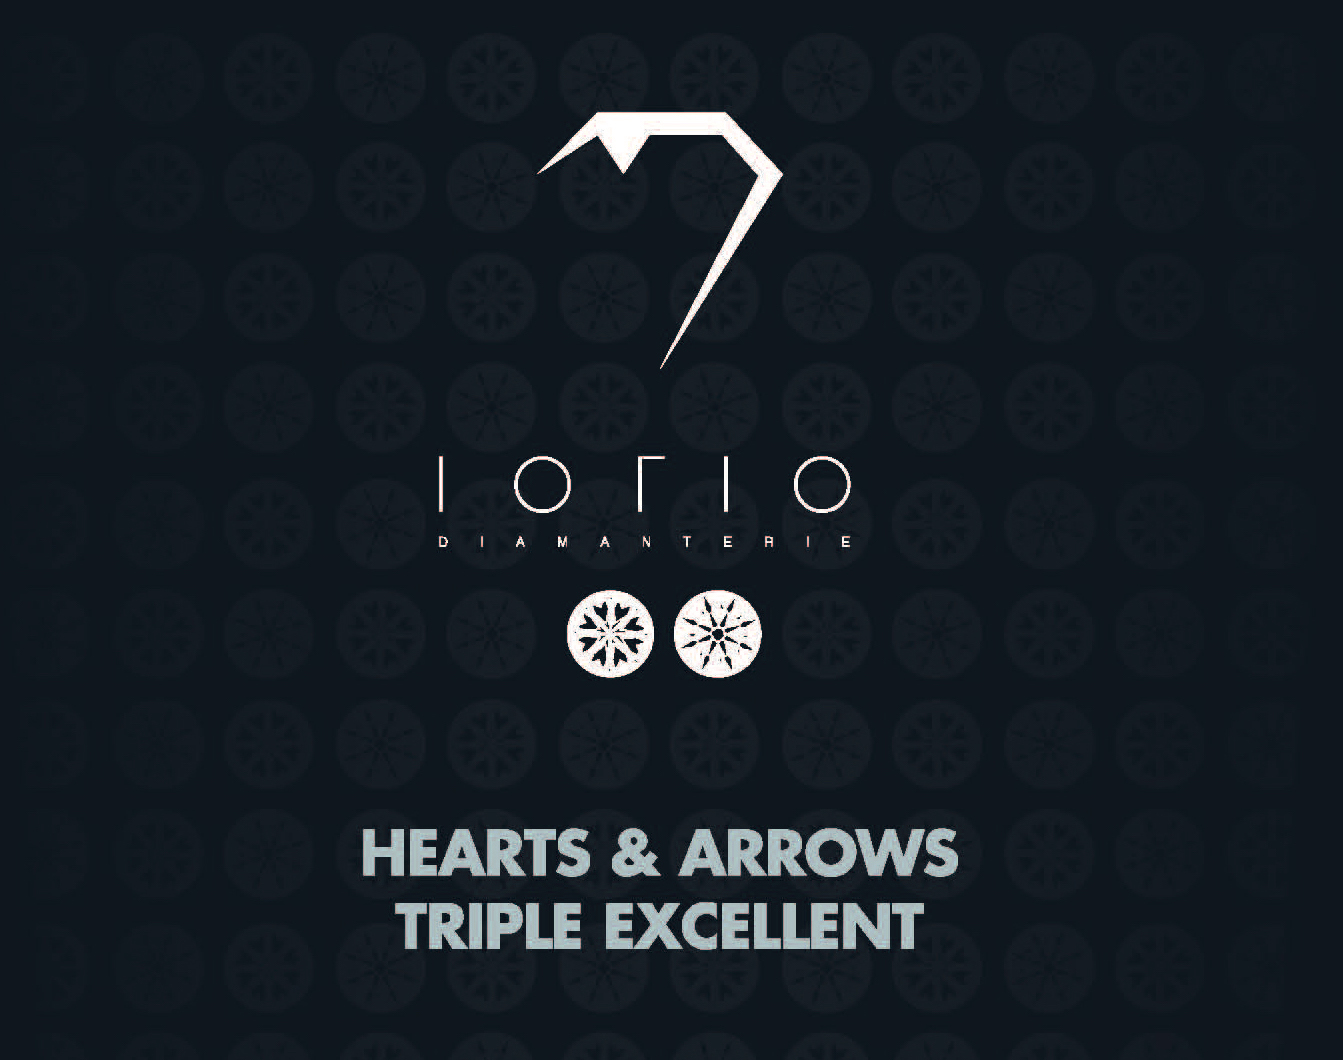 Diamanti Hearts & Arrows